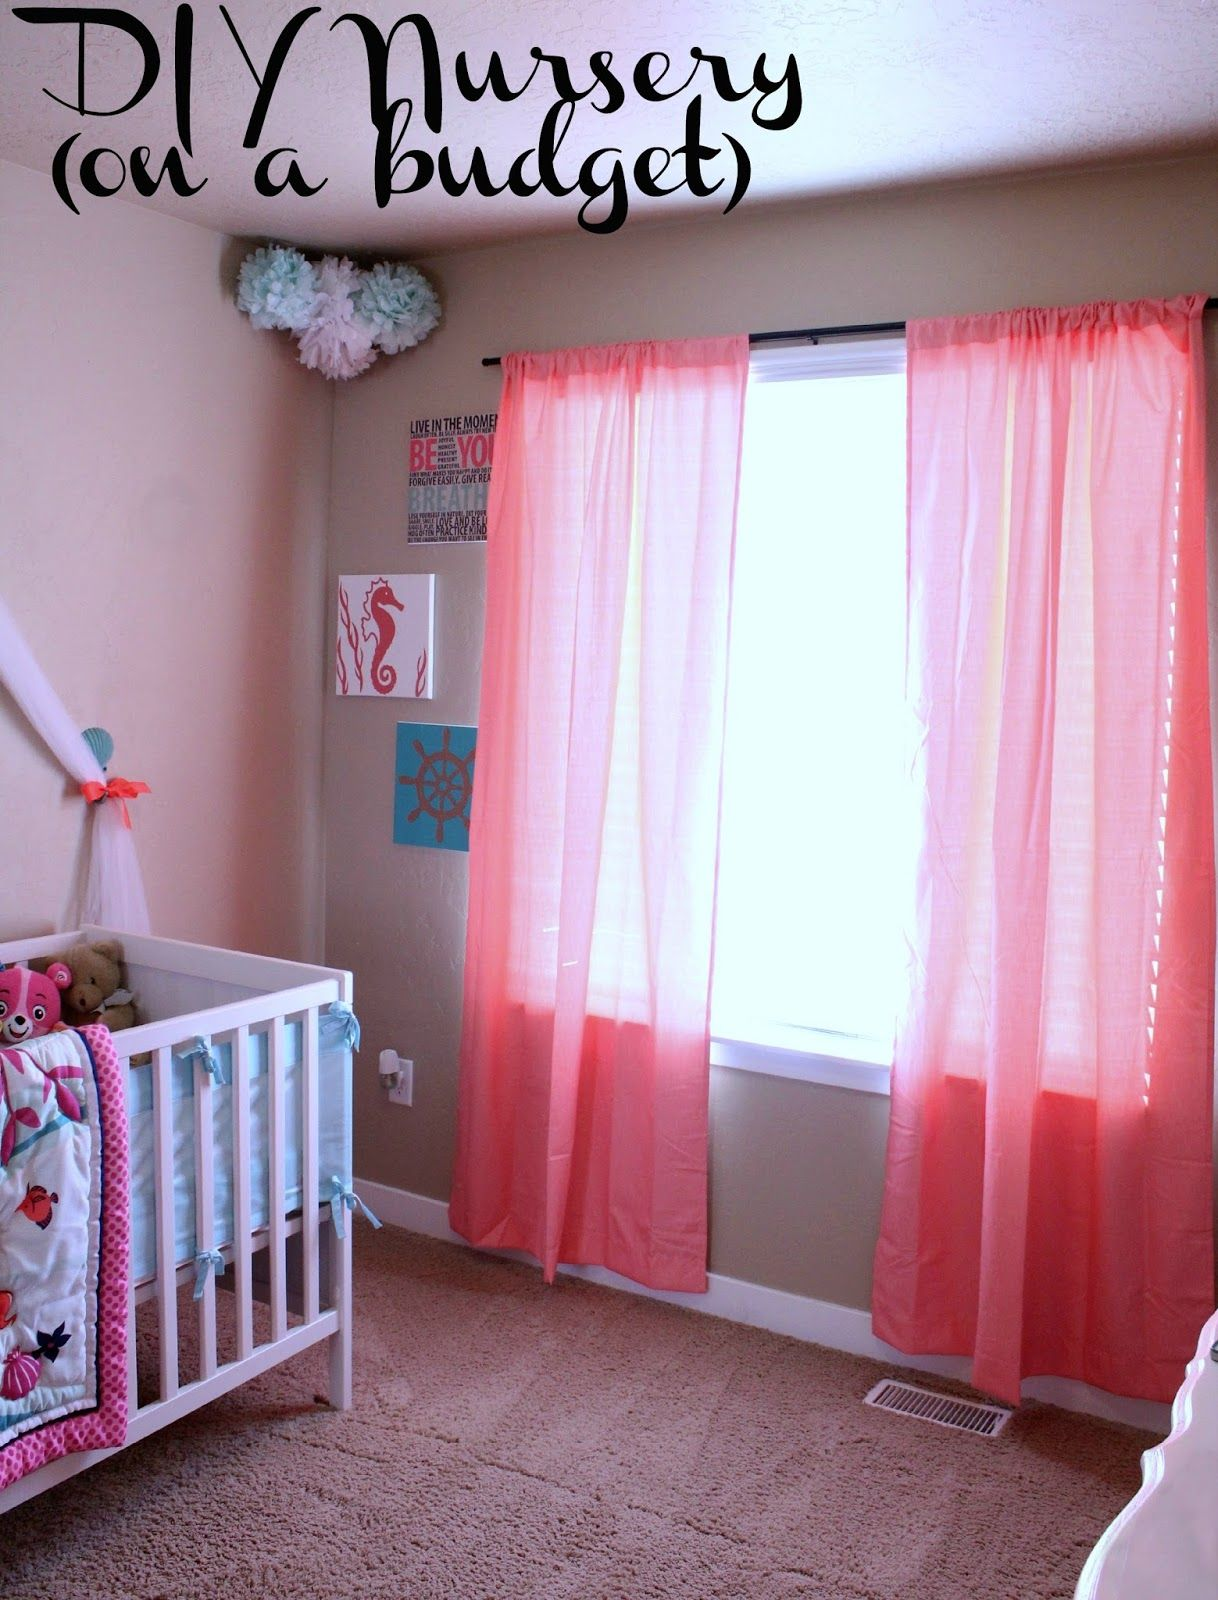 Diy Nursery On A Budget Easy Tips And Tricks To